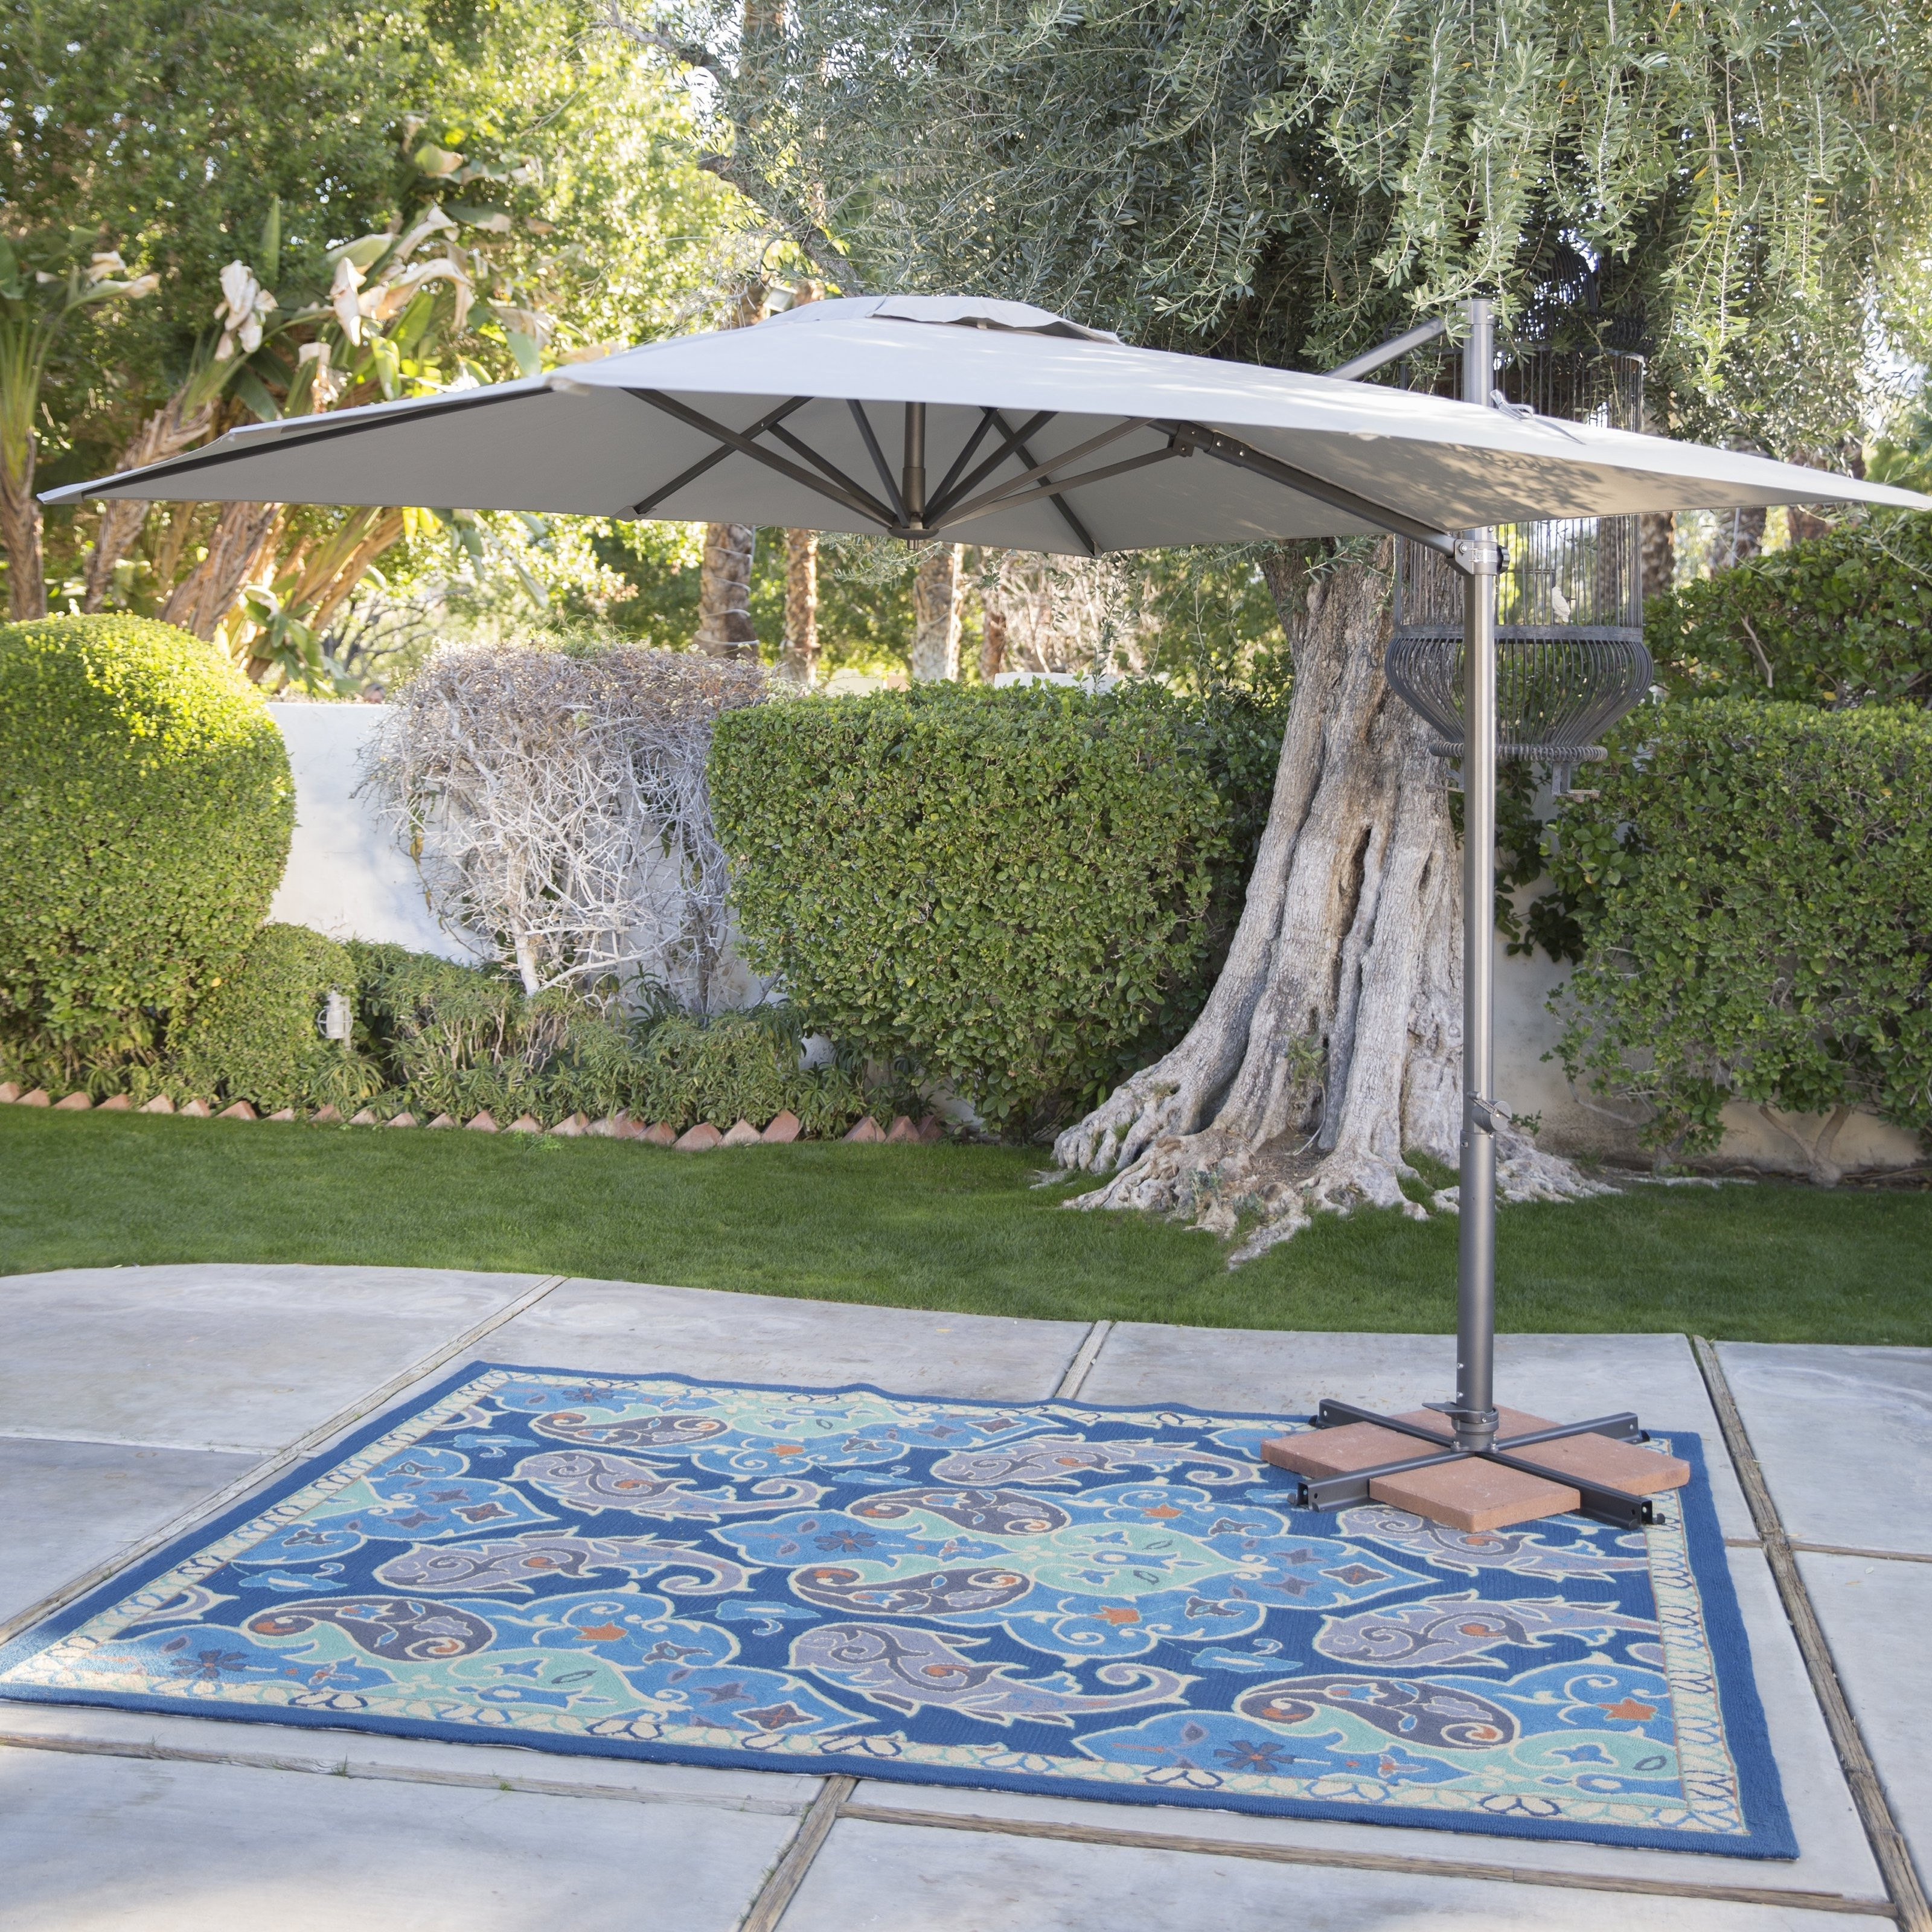 Current Patio Umbrella Covers Pertaining To Patio Umbrella Covers Best Of Patio Umbrella Covers Target Bd On (View 10 of 20)